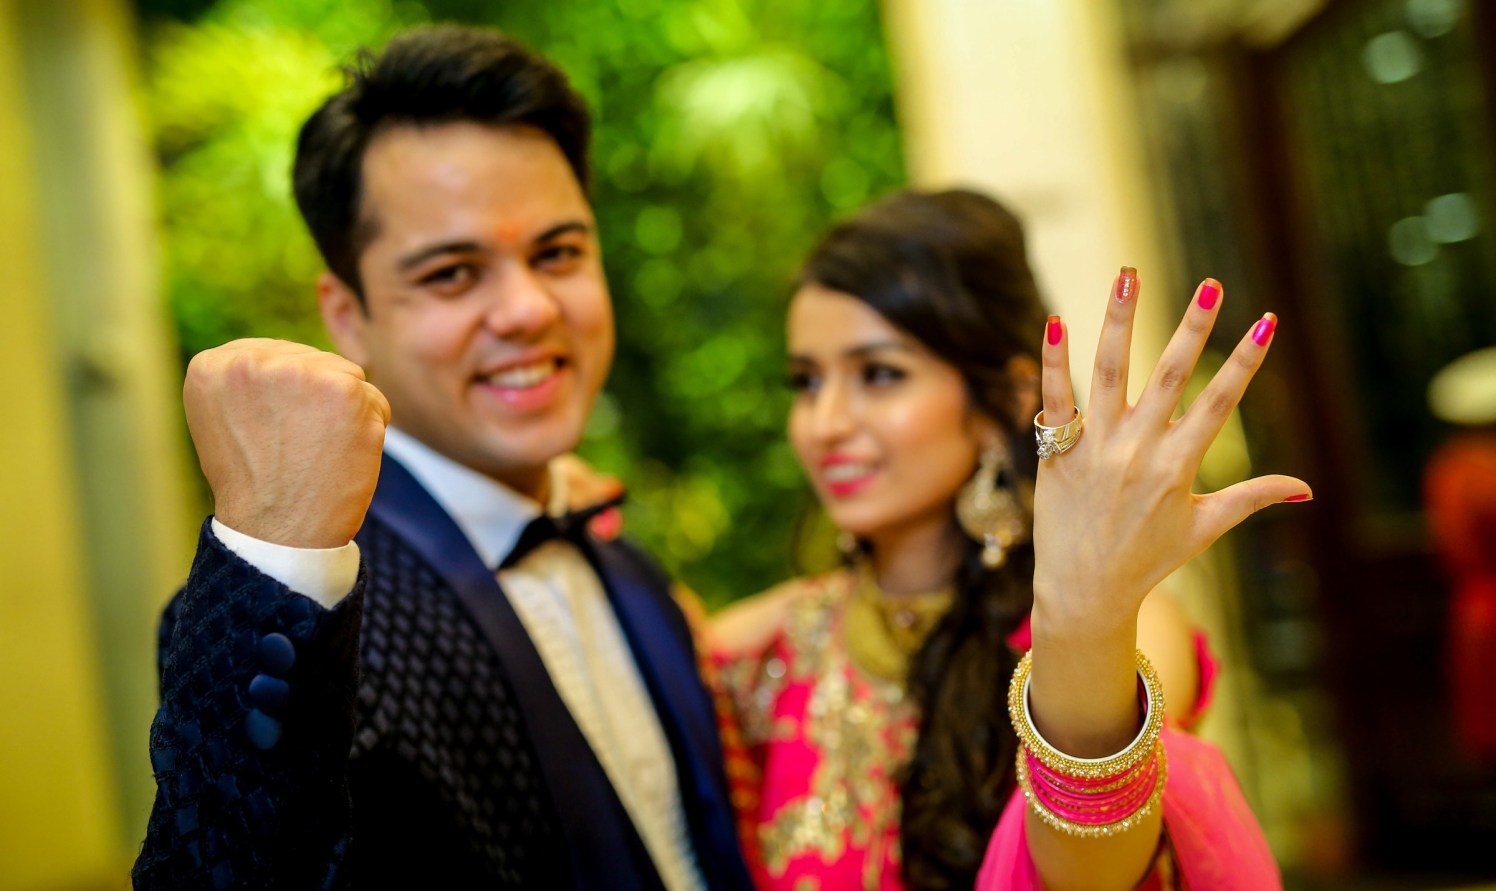 Engaged! by Kamal Malhotra Studio Wedding-photography | Weddings Photos & Ideas